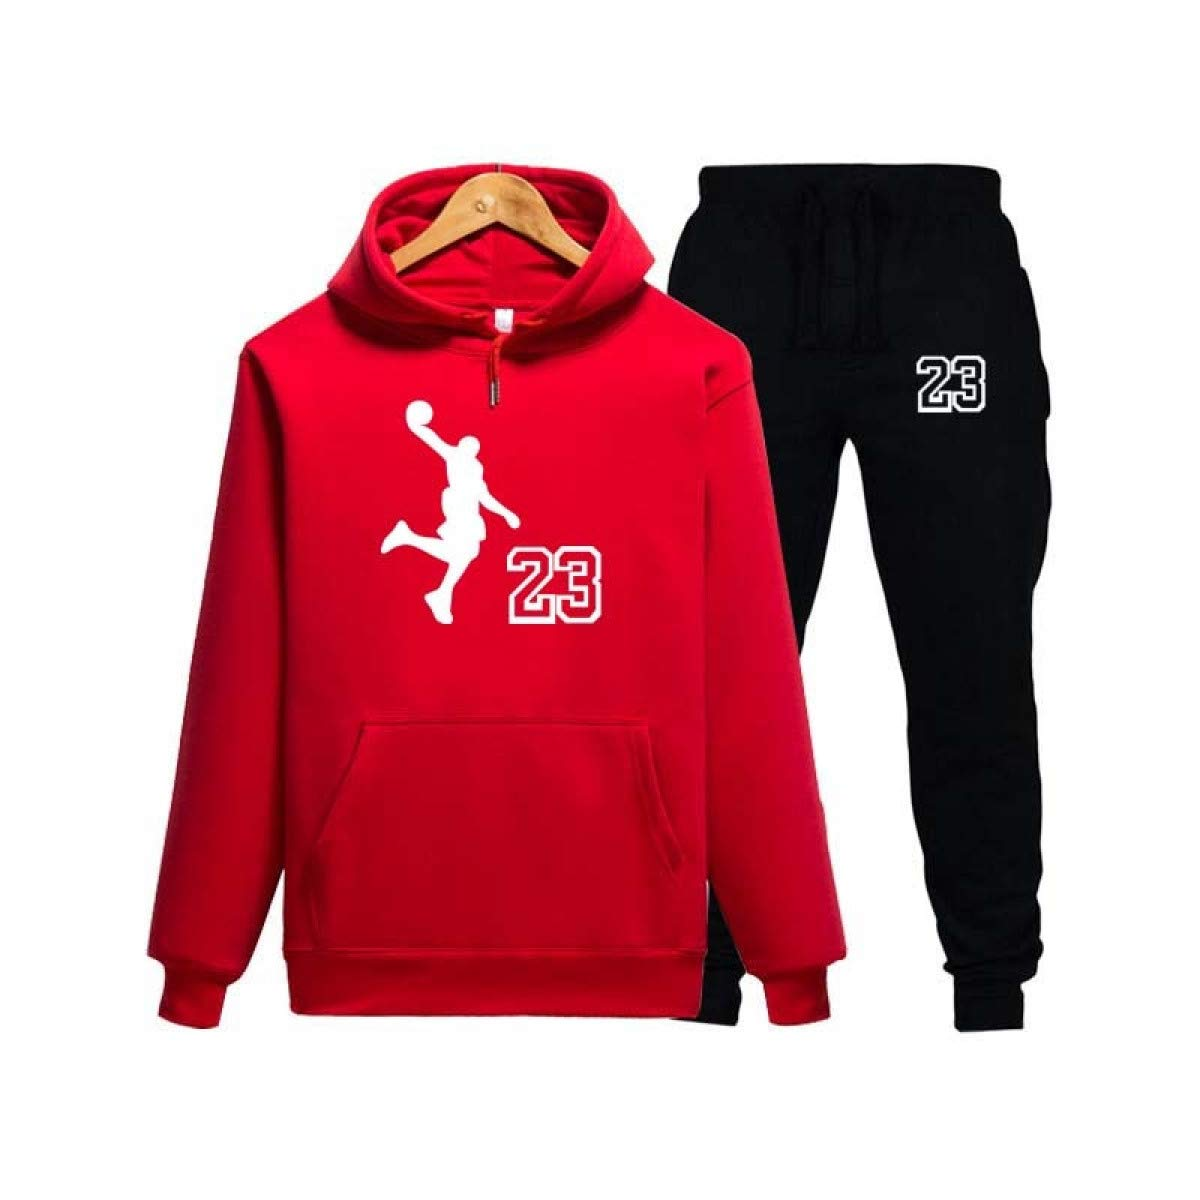 Jordan 23 Sport Suit Hoodie Hooded Men Cotton Sweatshirts Mens Casual Tracksuit at Amazon Mens Clothing store: